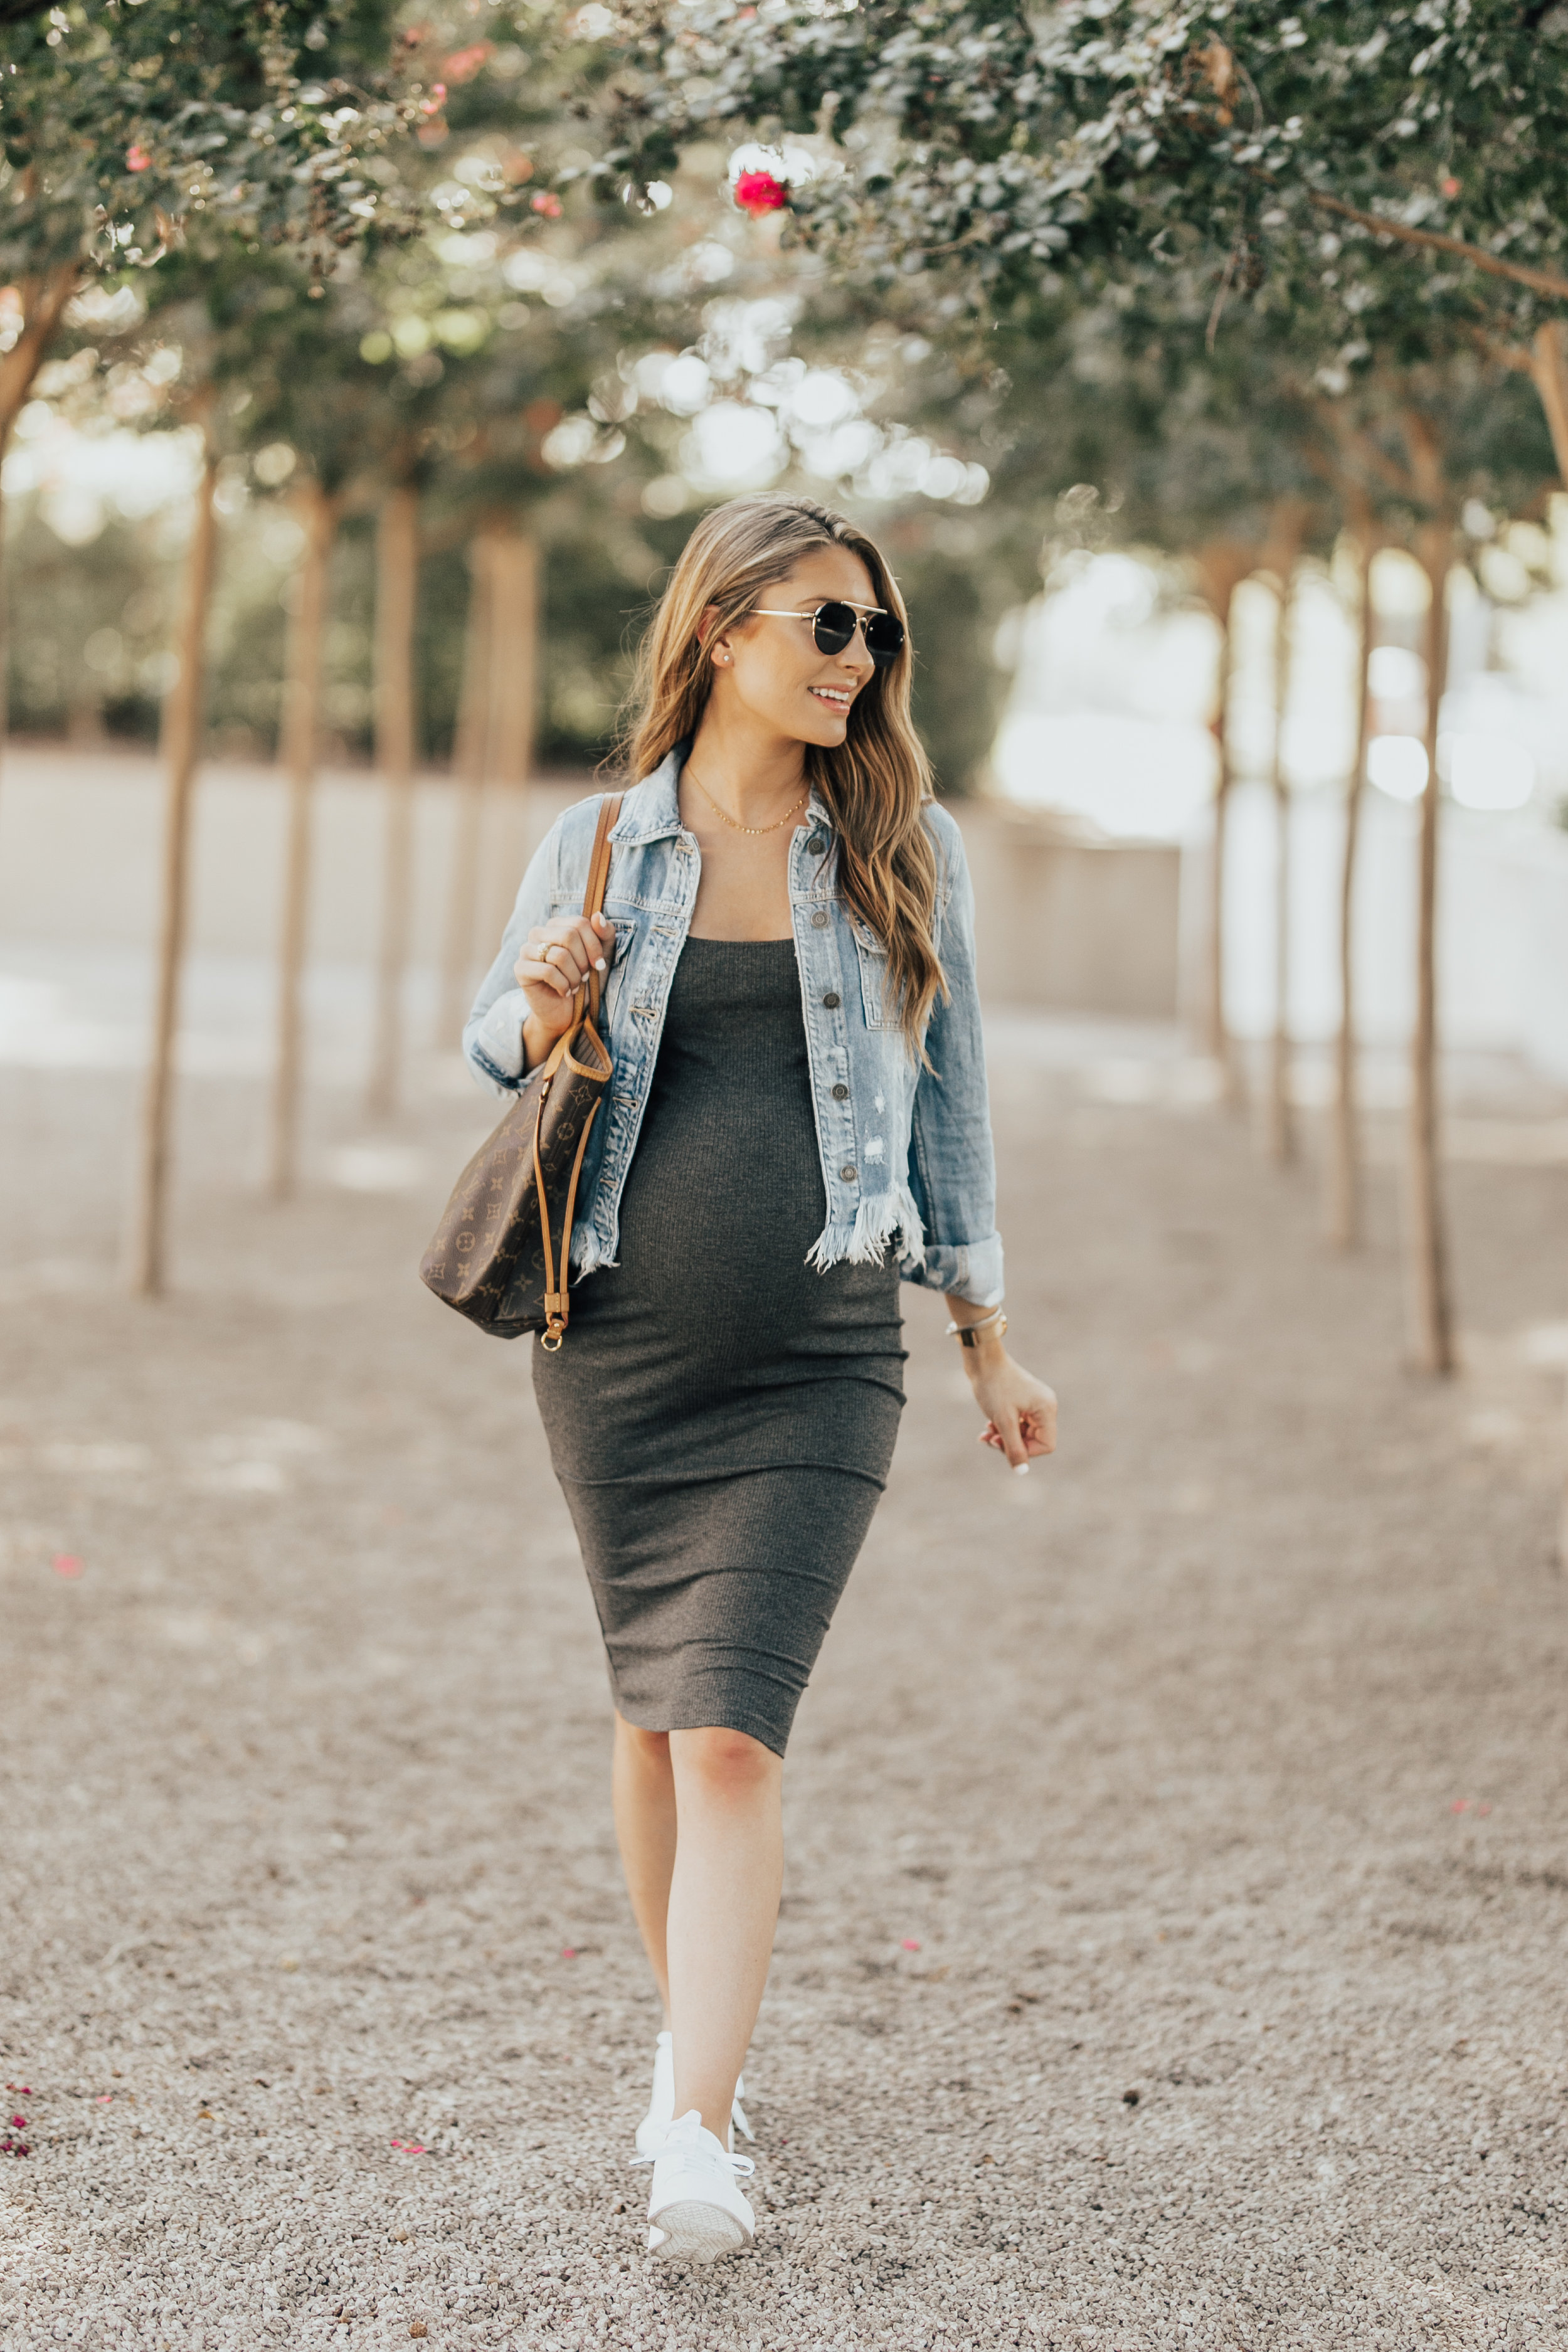 Ribbed Jersey Dress - The same dress as above, style with sneakers and a denim jacket. Perfect for a day full of errands. Non-maternity, wearing a small - $20!